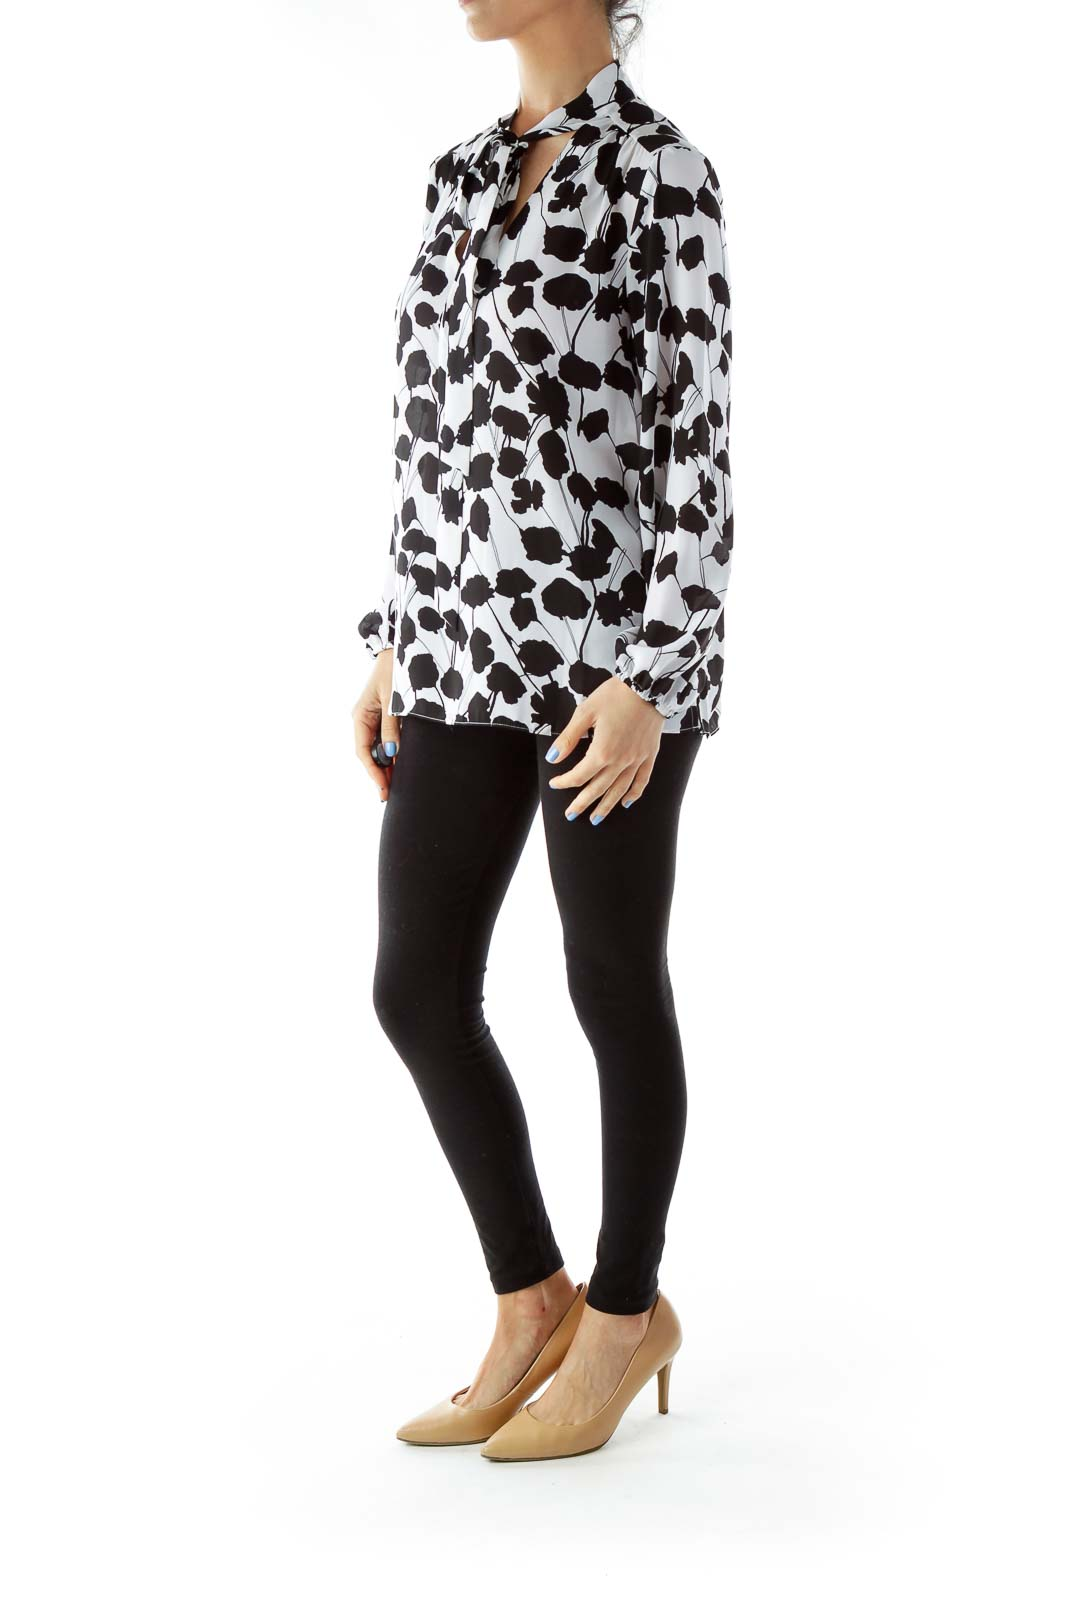 Black White Floral Print Blouse